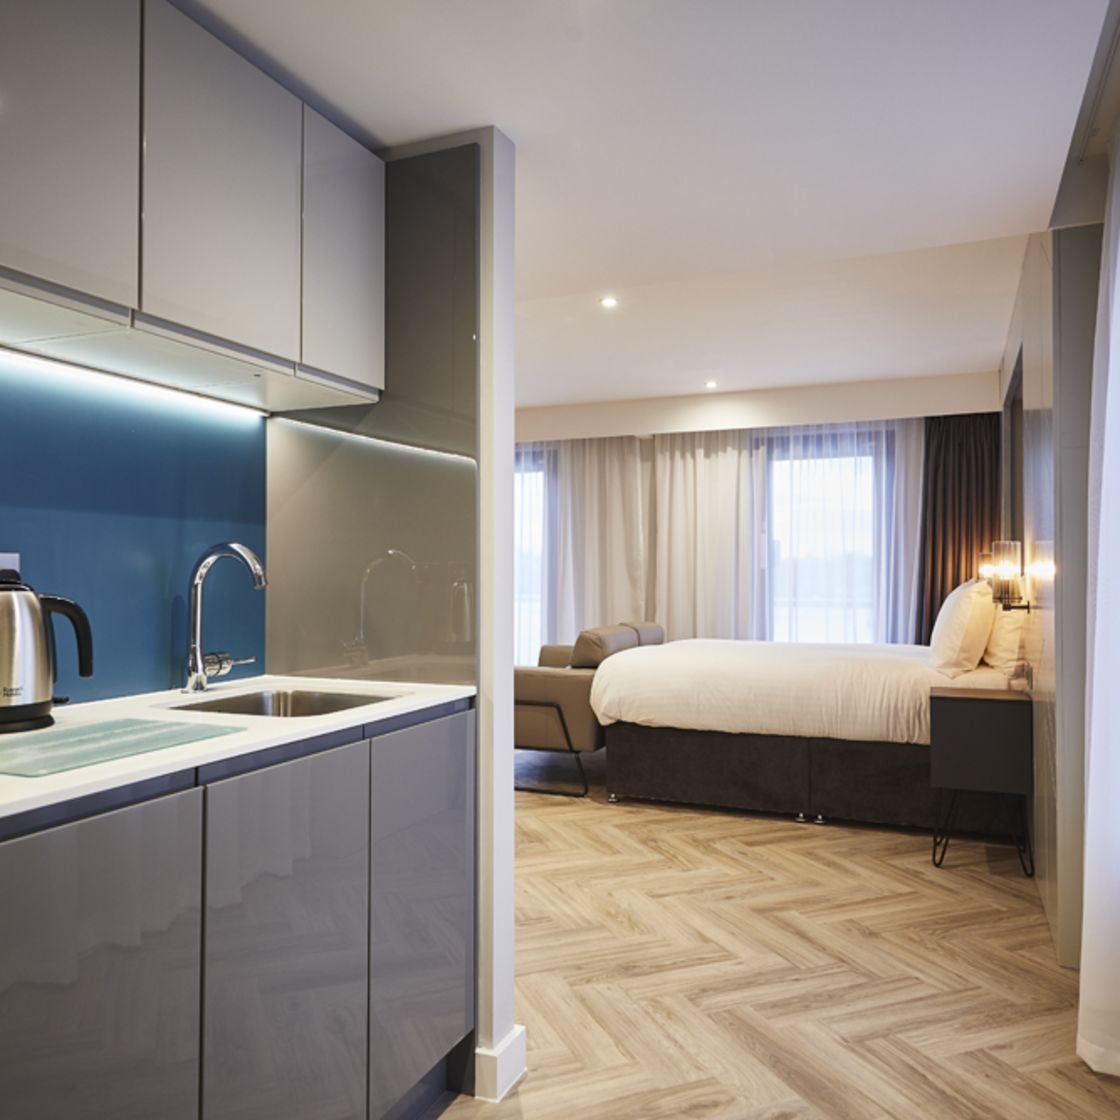 Grande Studio Student Apartment in York with King Size Bed and Kitchen. IconInc @ Roomzzz